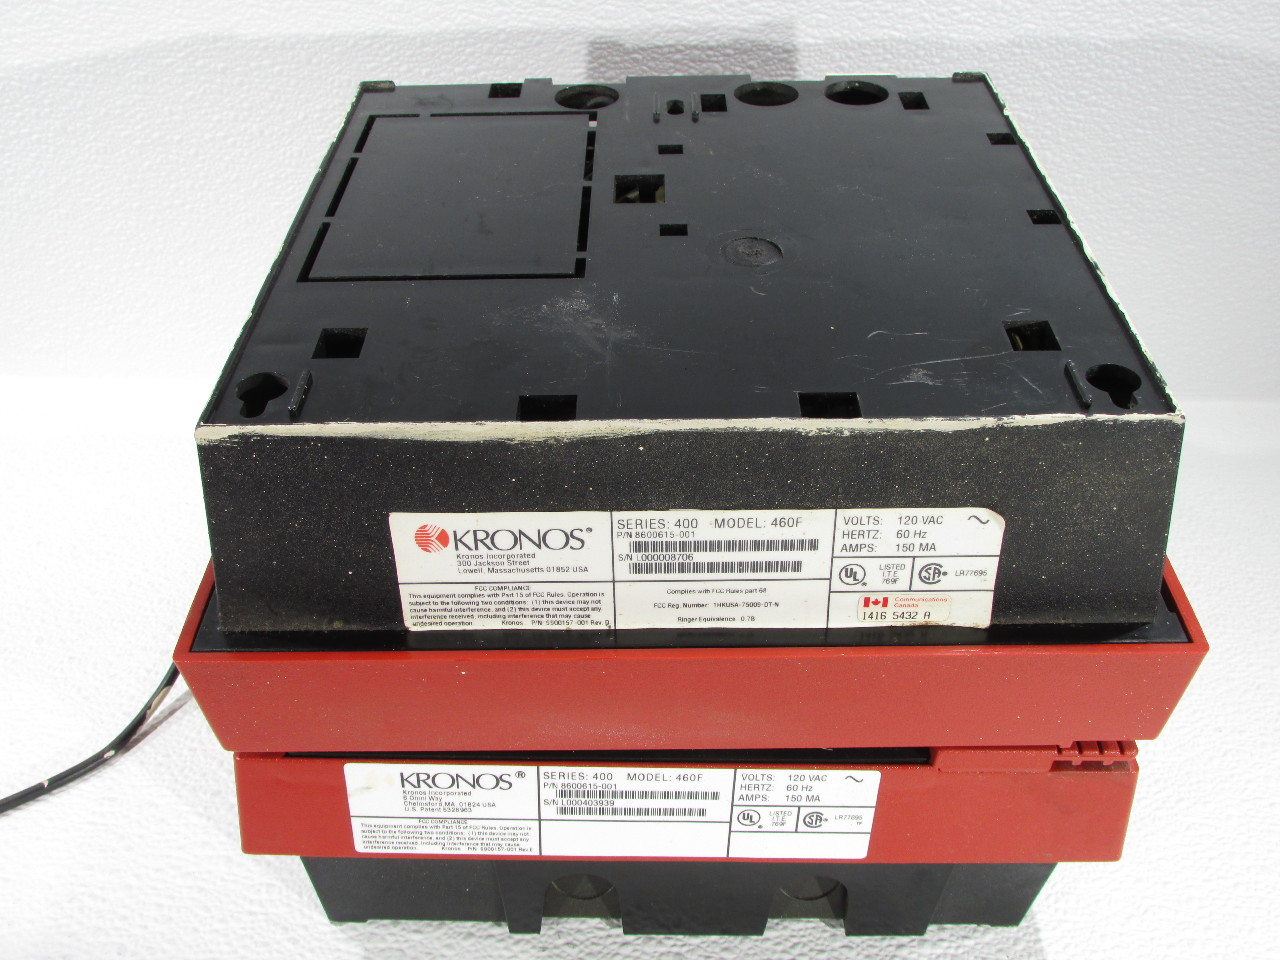 Kronos 480f Time Clock For Sale: LOT OF 4 KRONOS 8600615-001460F TIME CLOCK 120/230VAC 150